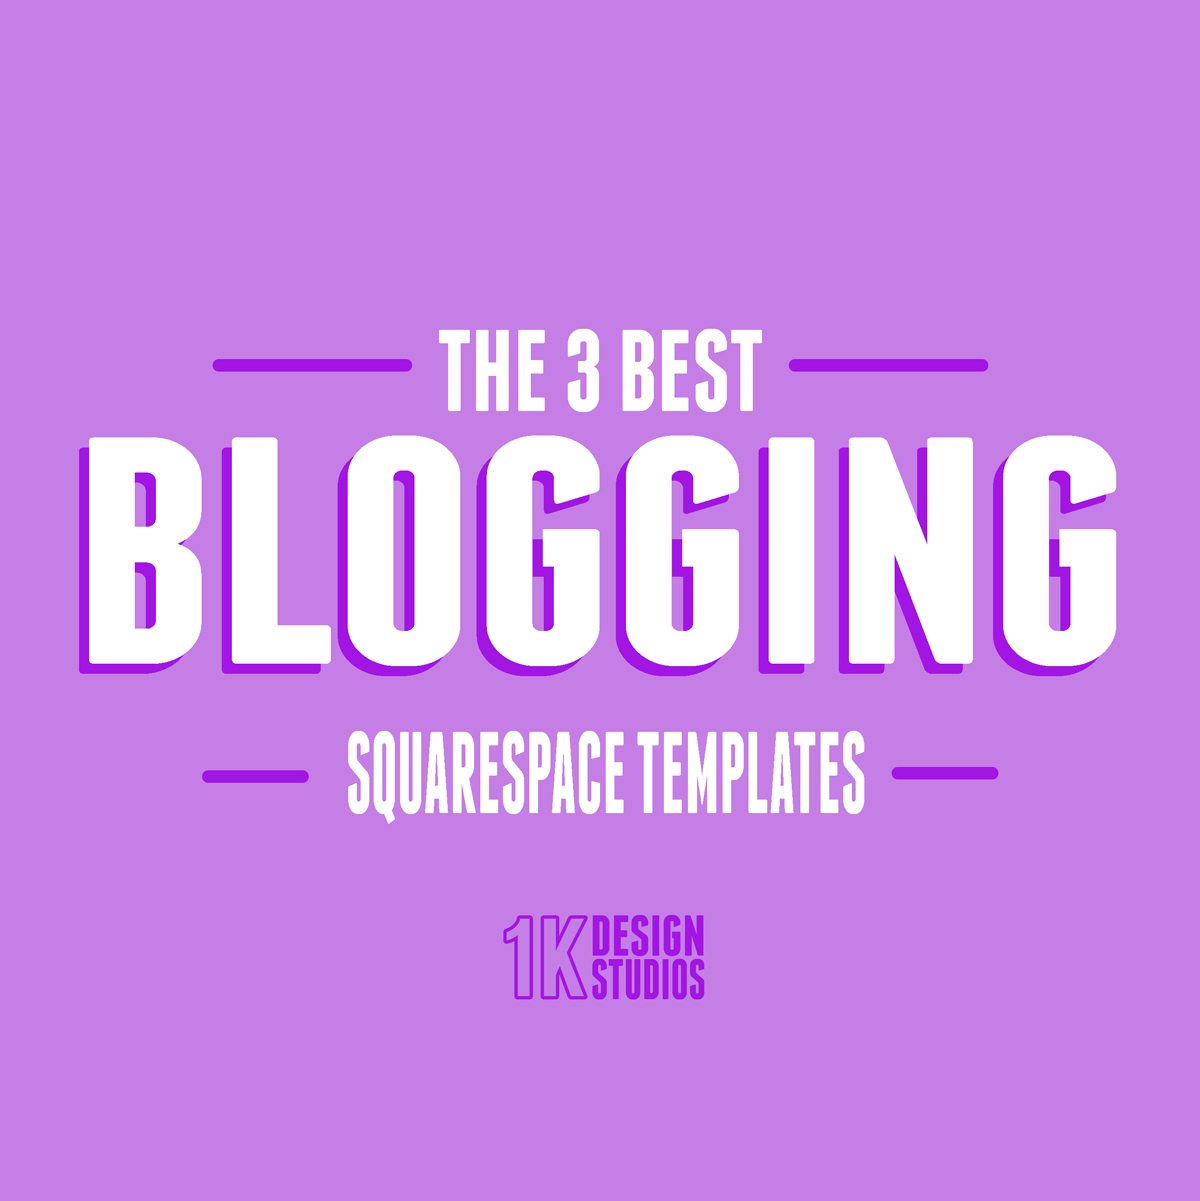 Blogging On Squarespace The 3 Best Templates For Bloggers And